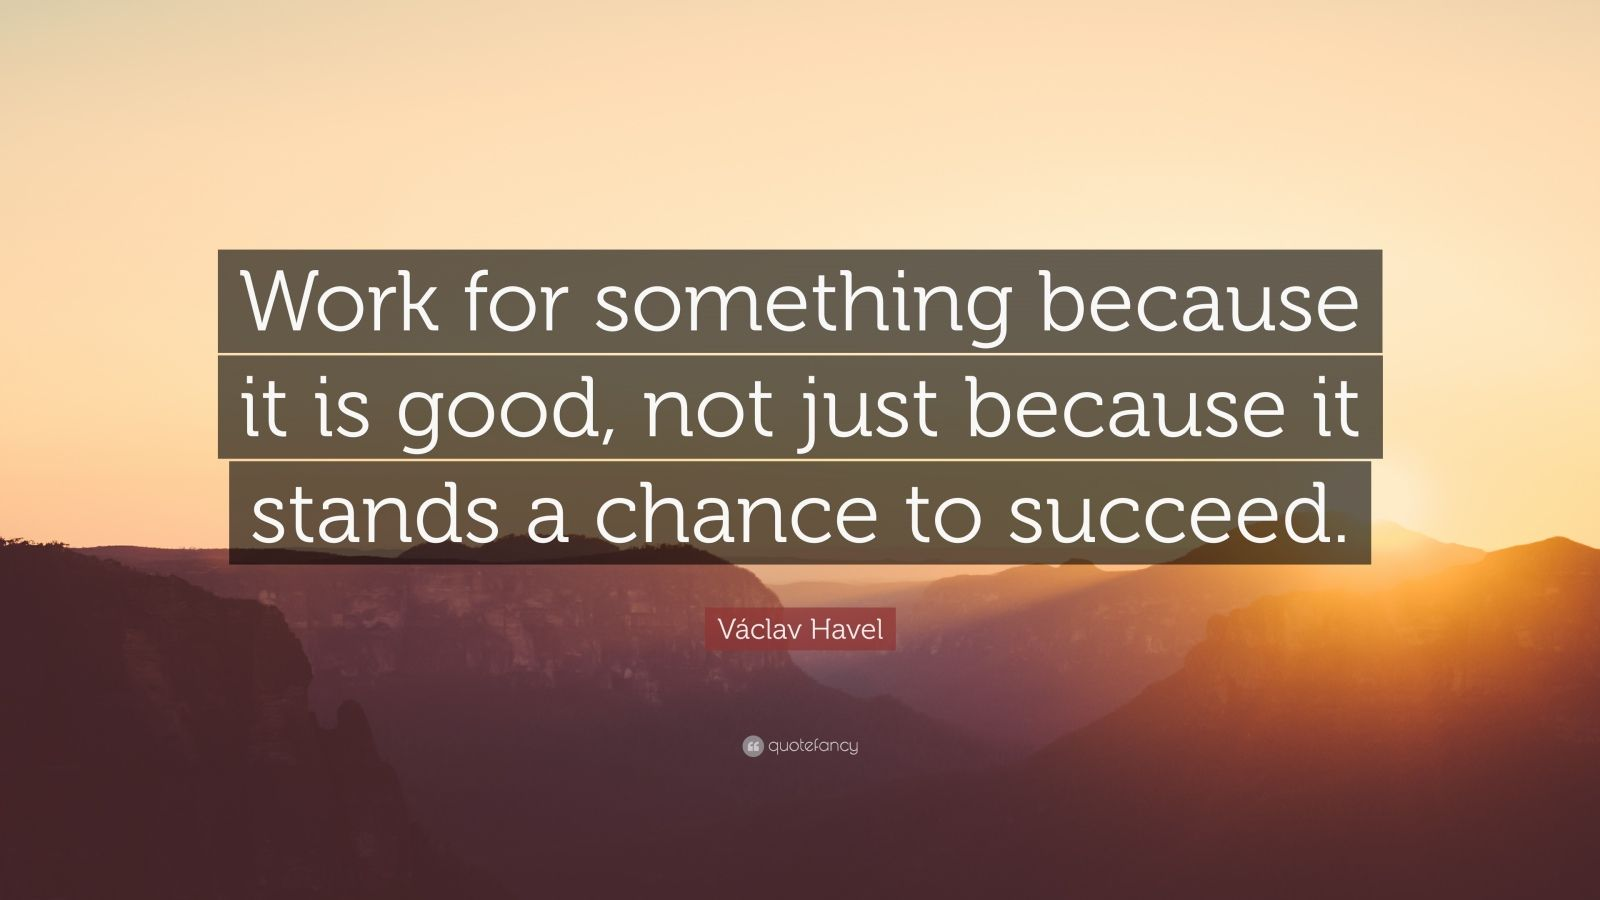 """Václav Havel Quote: """"Work for something because it is good, not just because it stands a chance to succeed."""""""